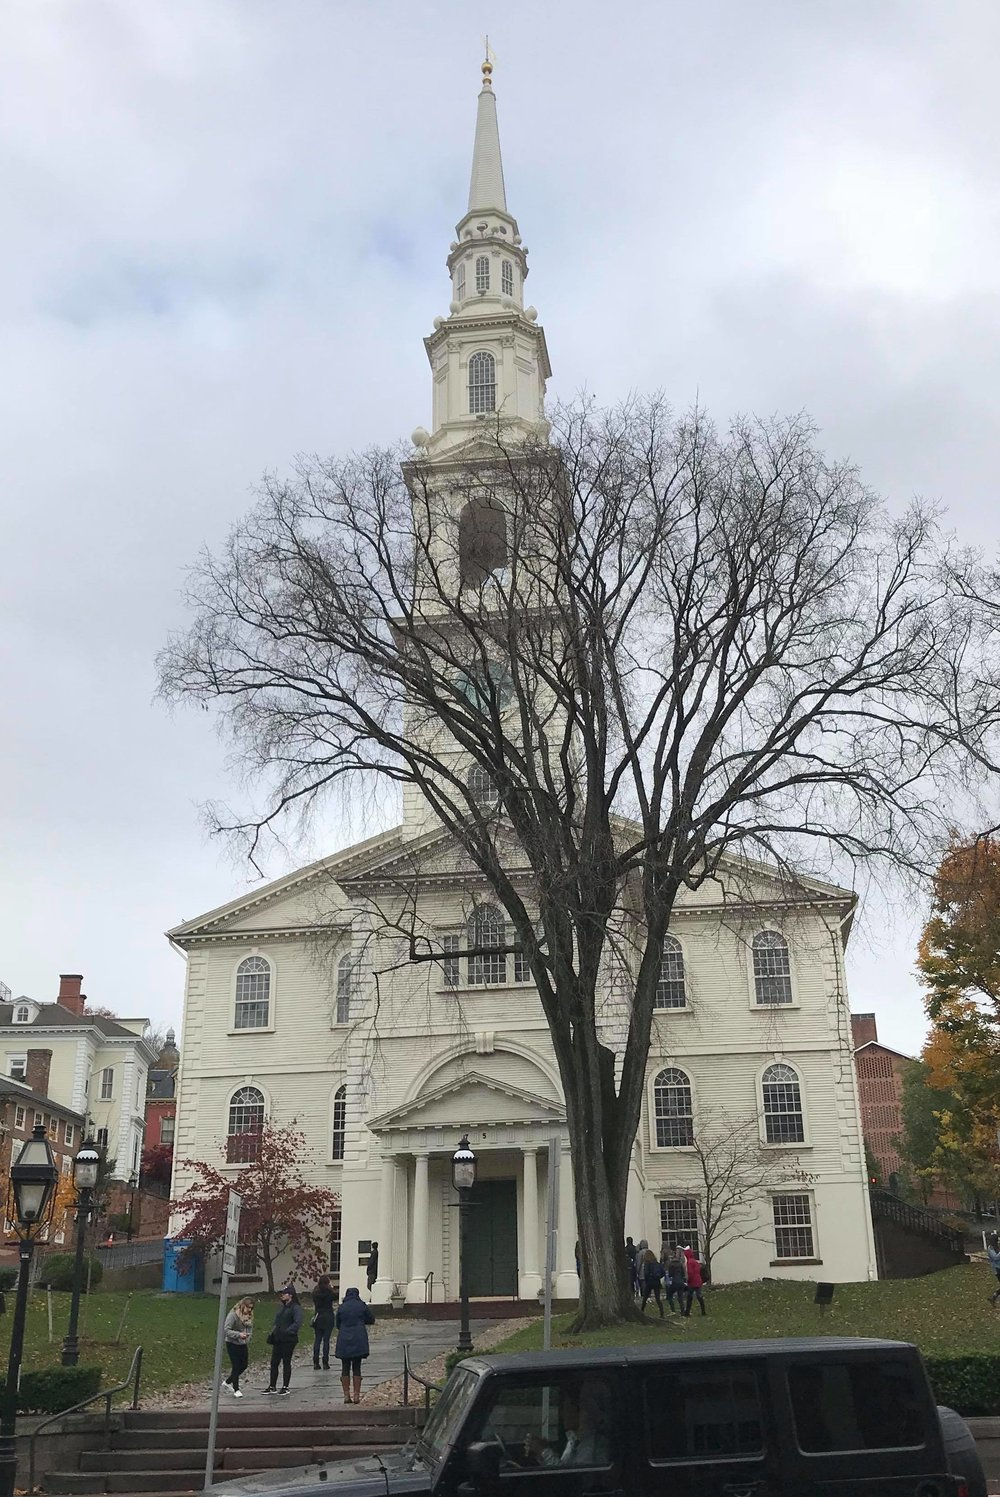 The first Baptist Church in America established in 1638 in Rhode Island by Roger Williams. Picture taken by my son Nehemiah a week ago while visiting there.